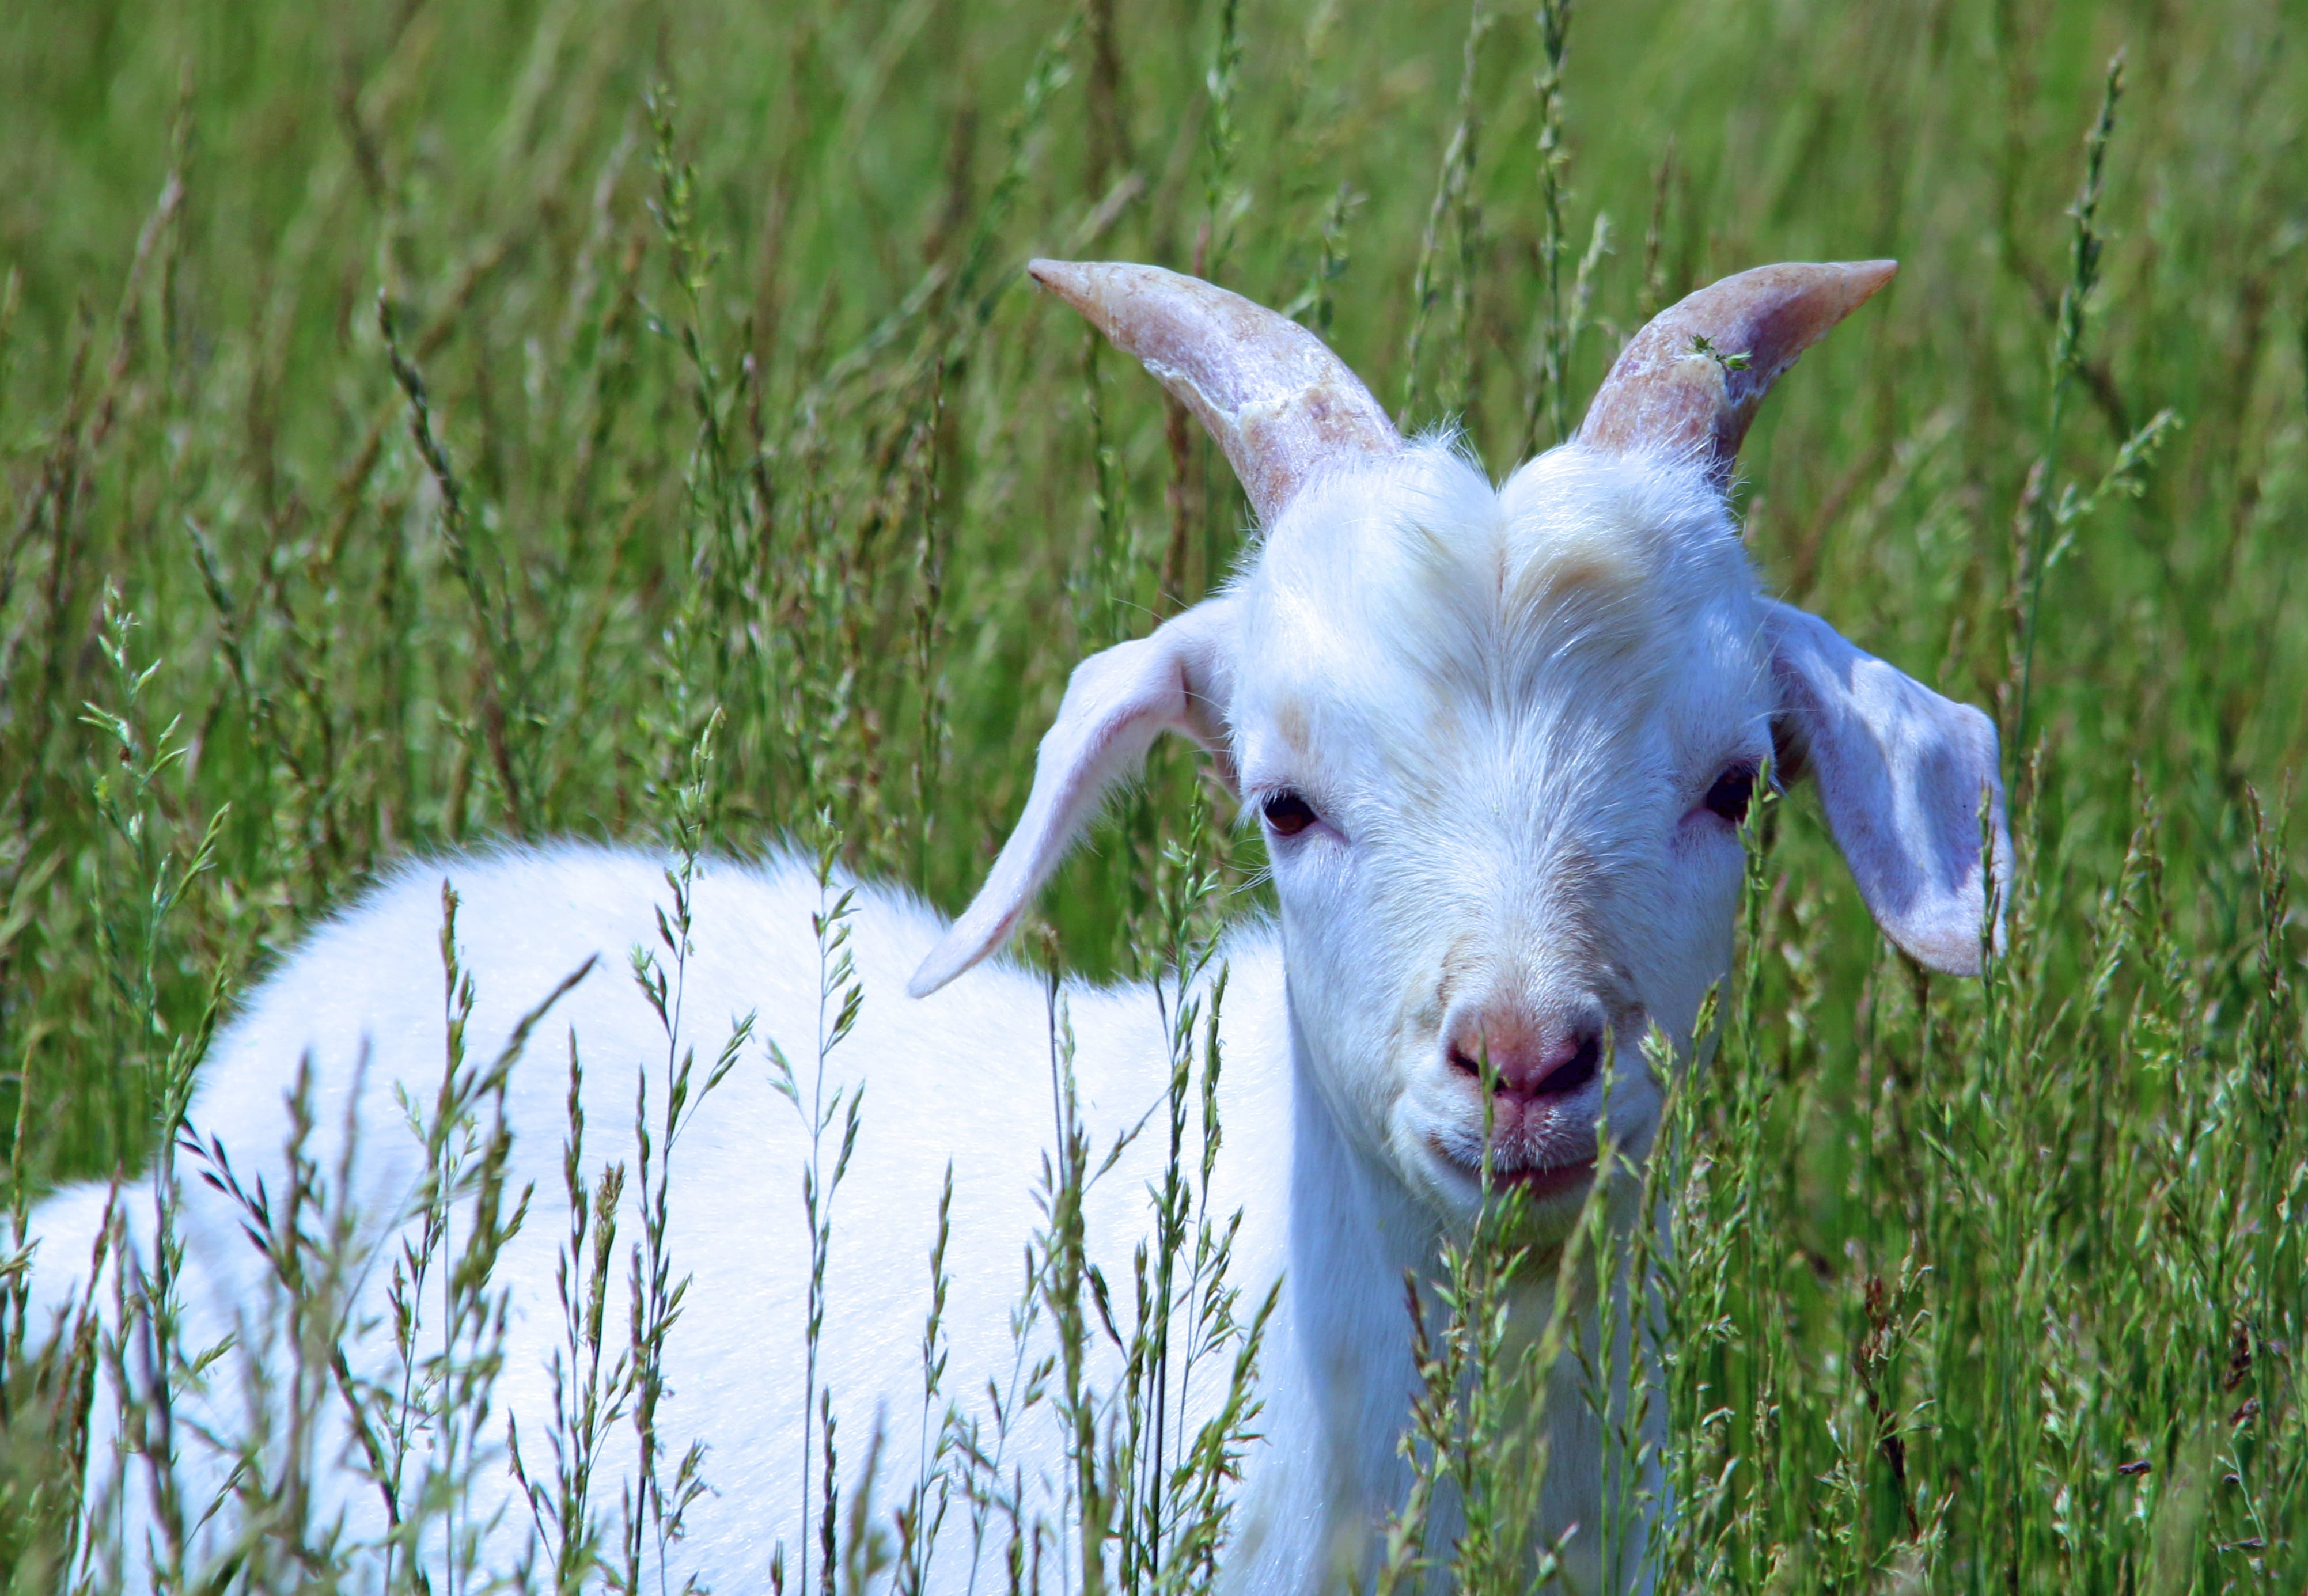 Close-up Portrait of Sheep on Field